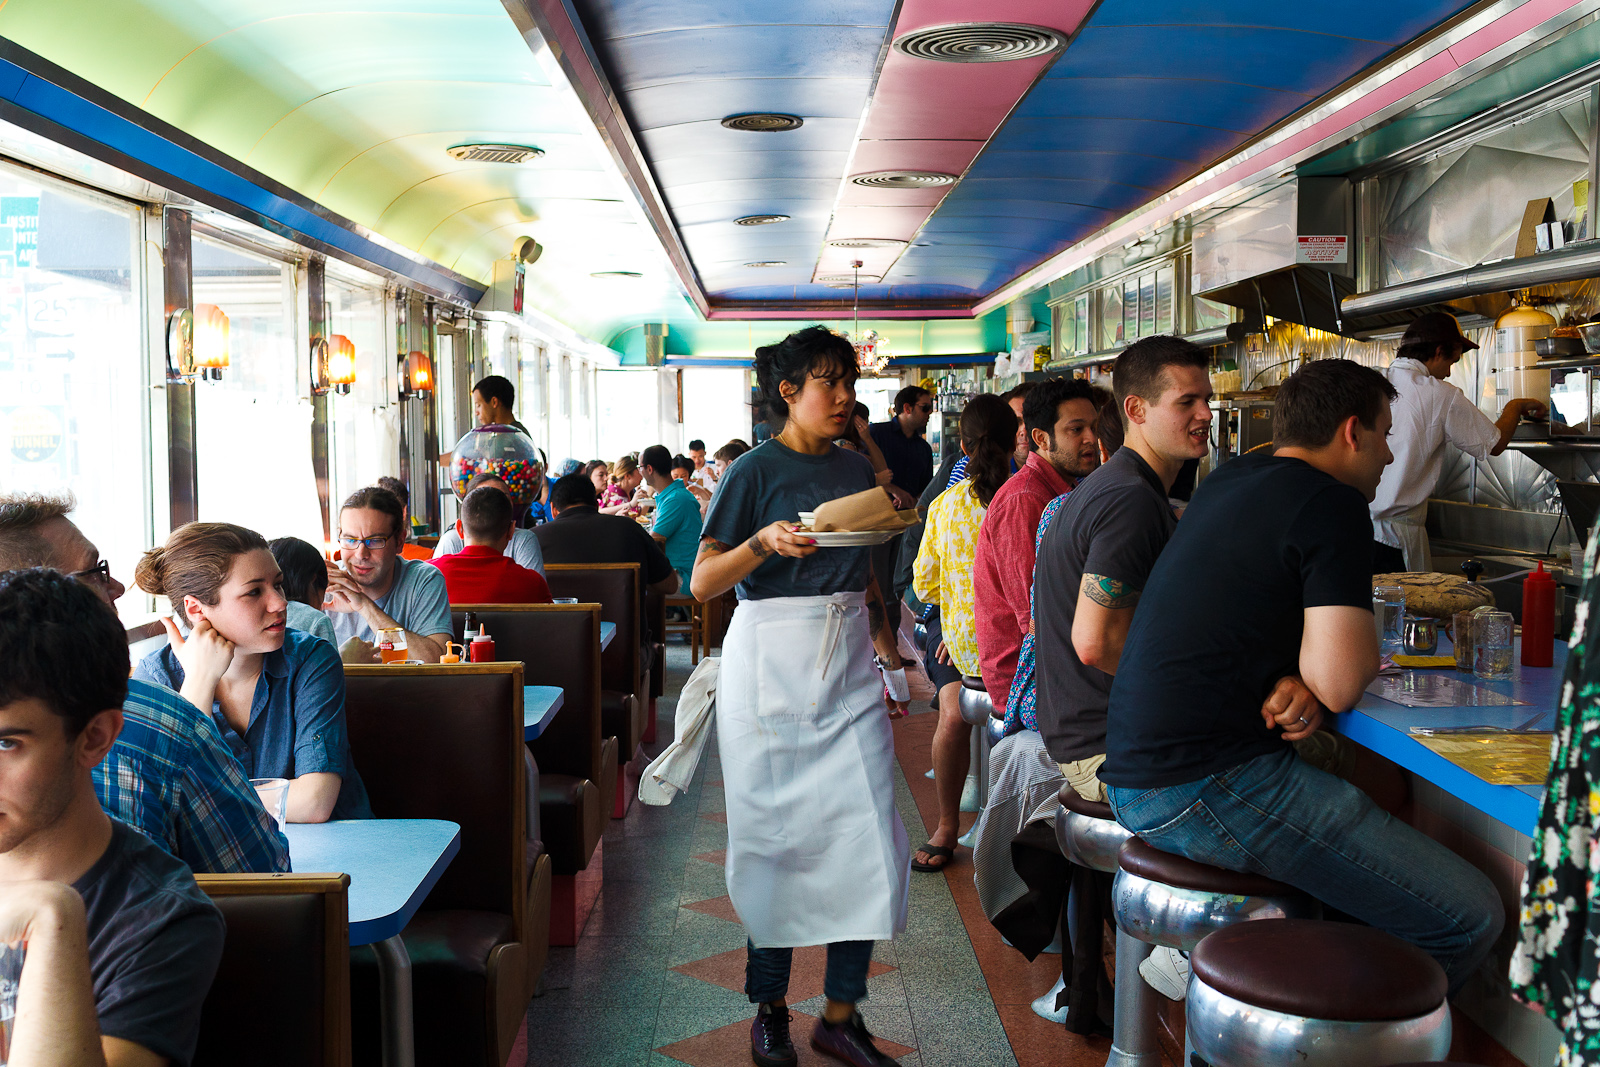 Interior of diner on a Sunday afternoon